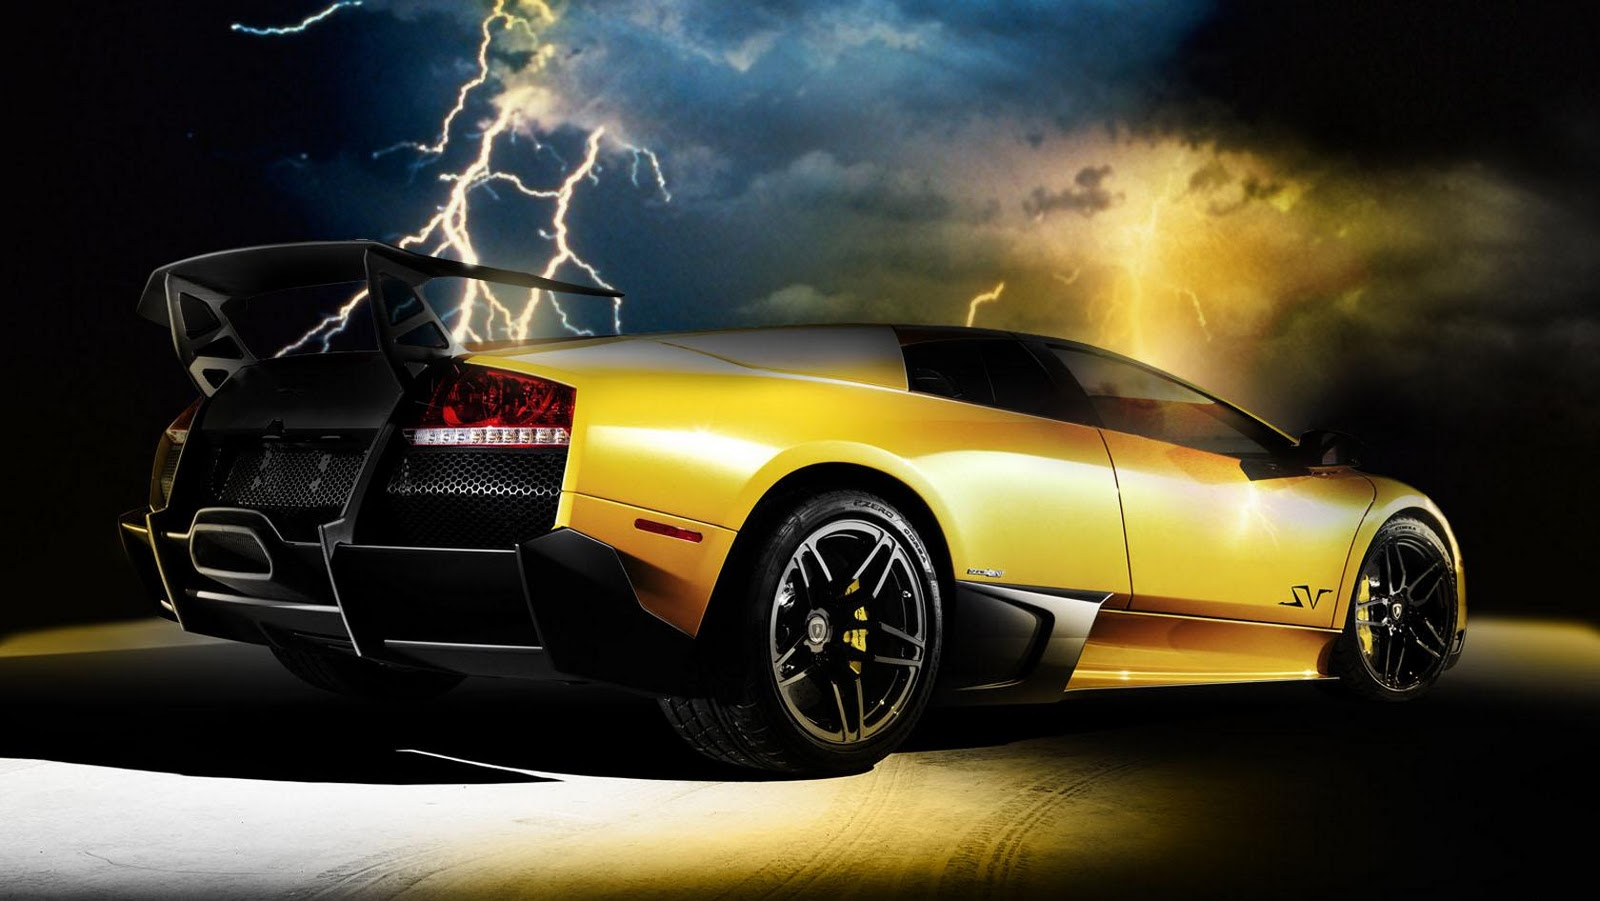 Hd Cool Car Wallpapers: lamborghini murcielago wallpaper